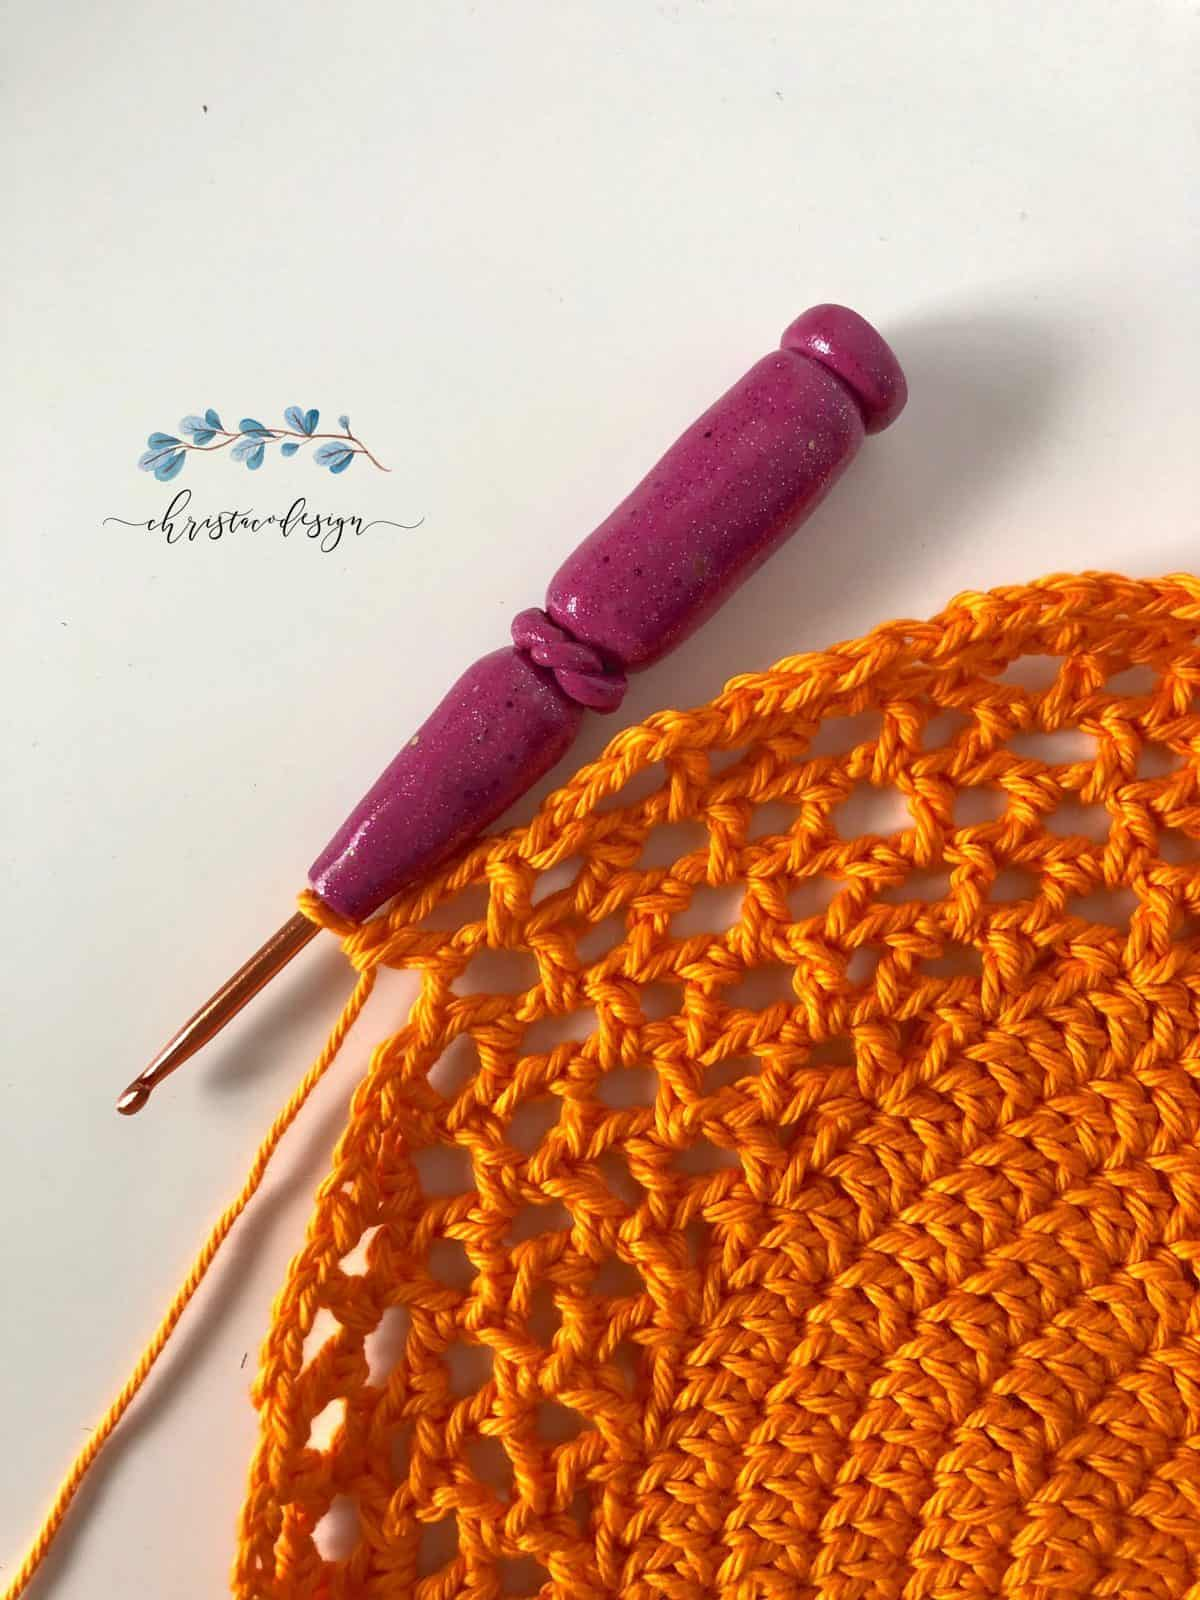 Free crochet tote bag pattern worked in the round with solid bottom progress with pink hook.